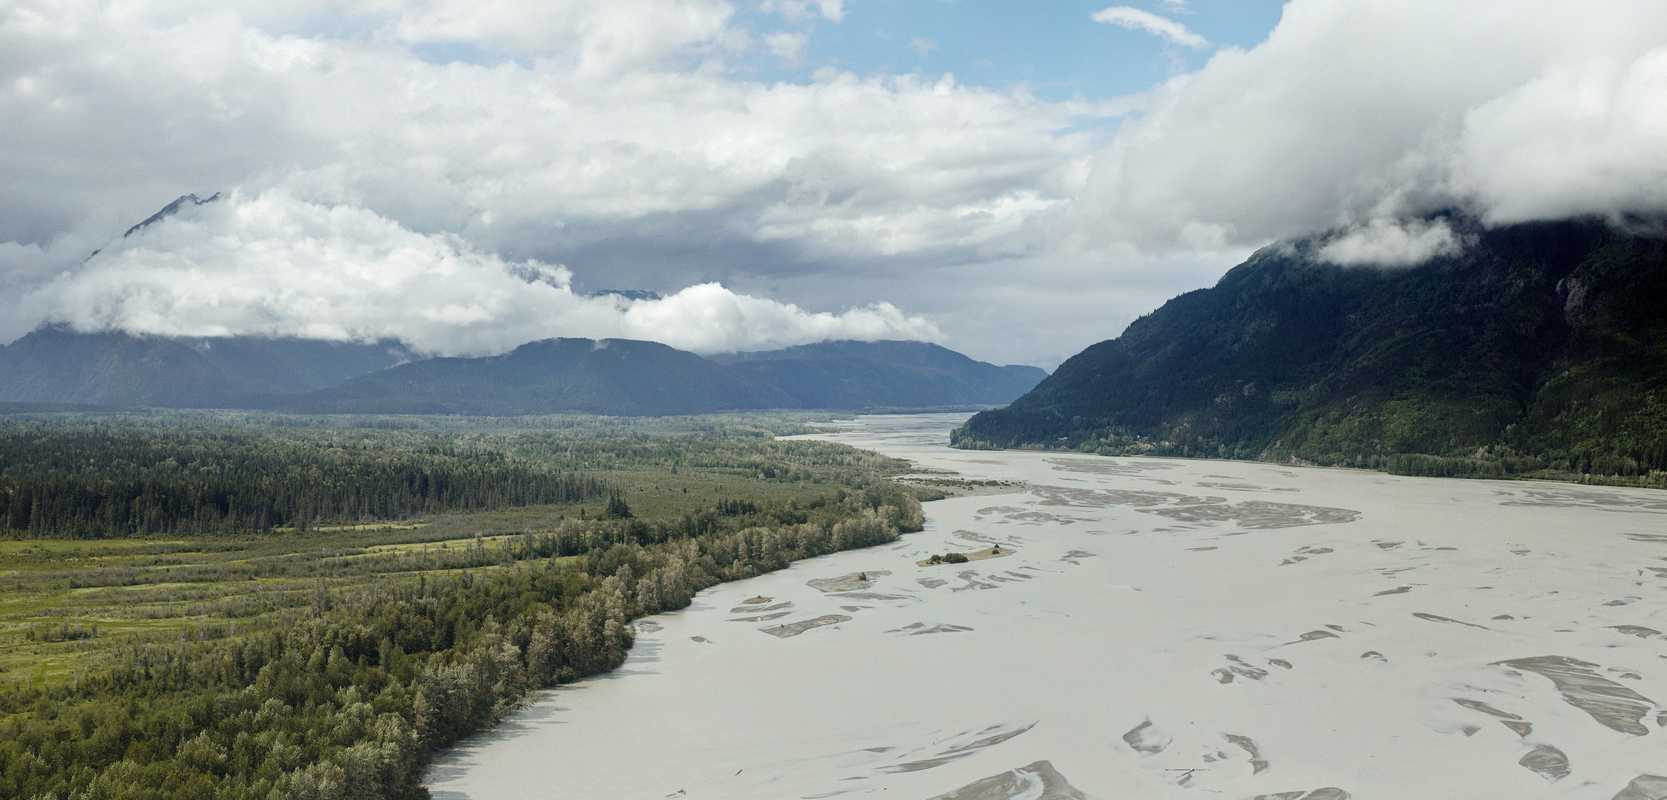 Tidal flats of the Chilkat River